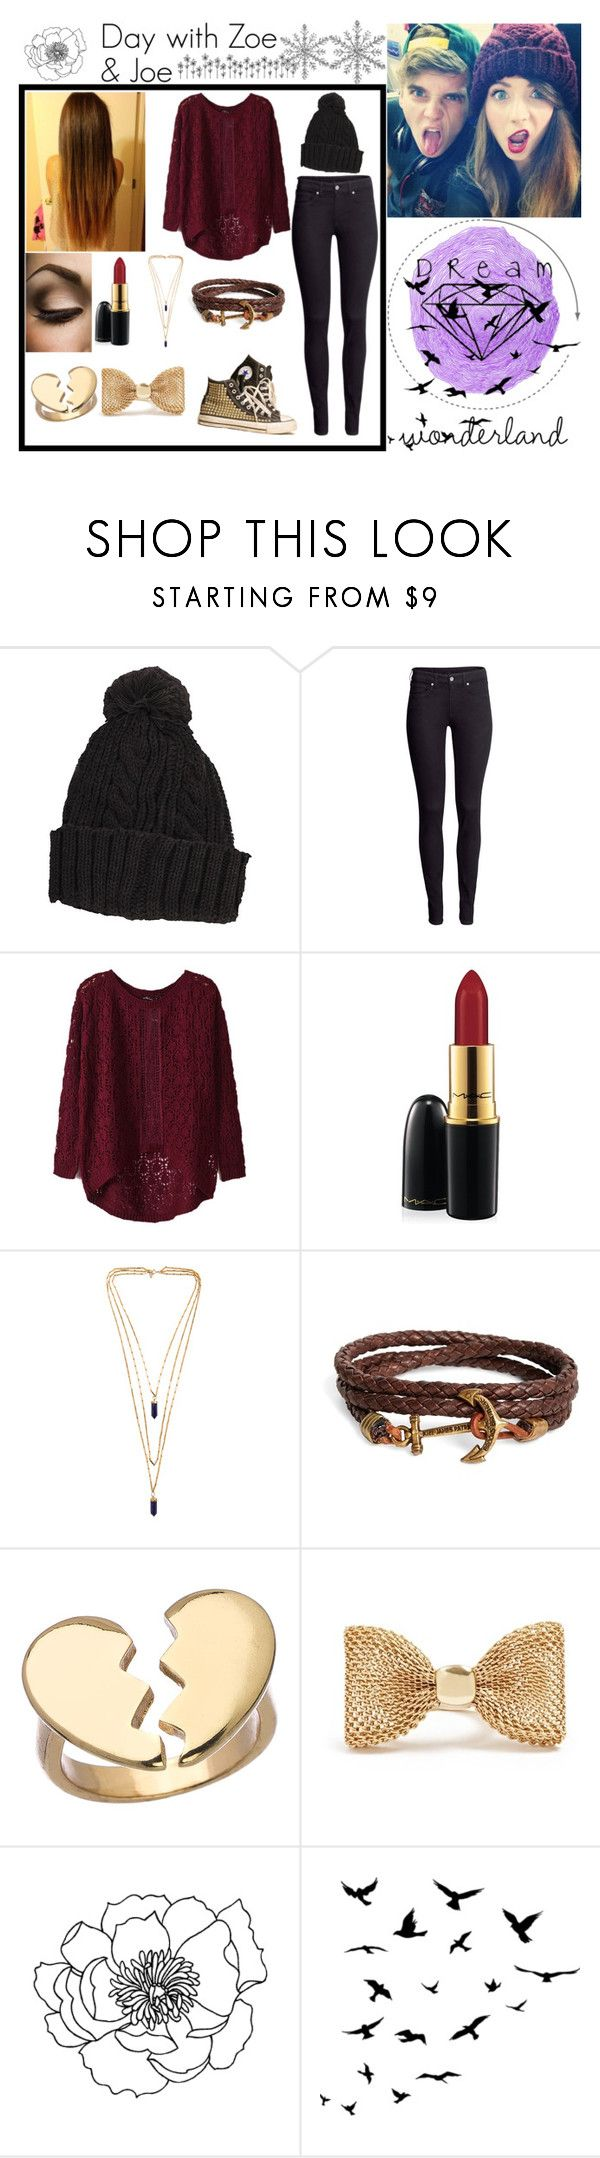 """""""Day with Zoe & Joe"""" by kennedey-lynn-freeman ❤ liked on Polyvore featuring H&M, MAC Cosmetics, Isabel Marant, Brooks Brothers, Blu Bijoux, GUESS and WALL"""